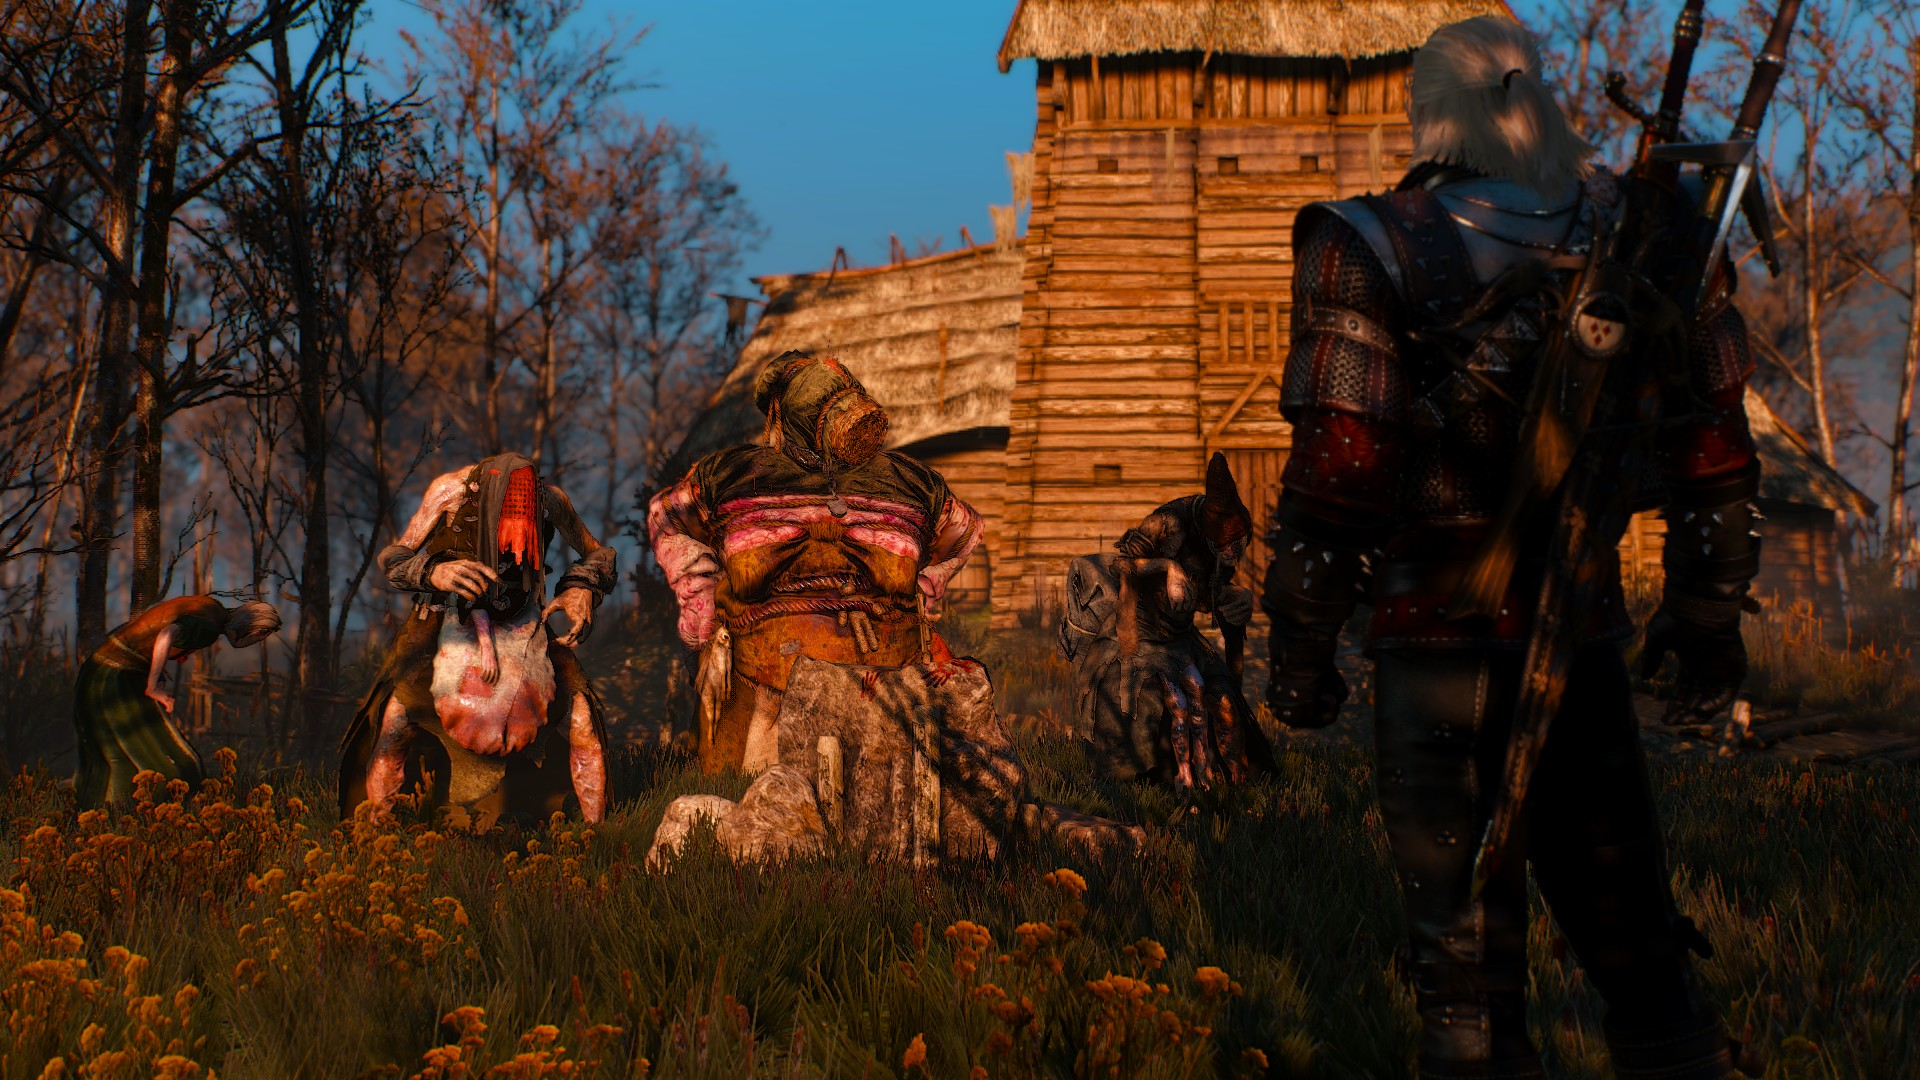 20180930101726_1.jpg - Witcher 3: Wild Hunt, the